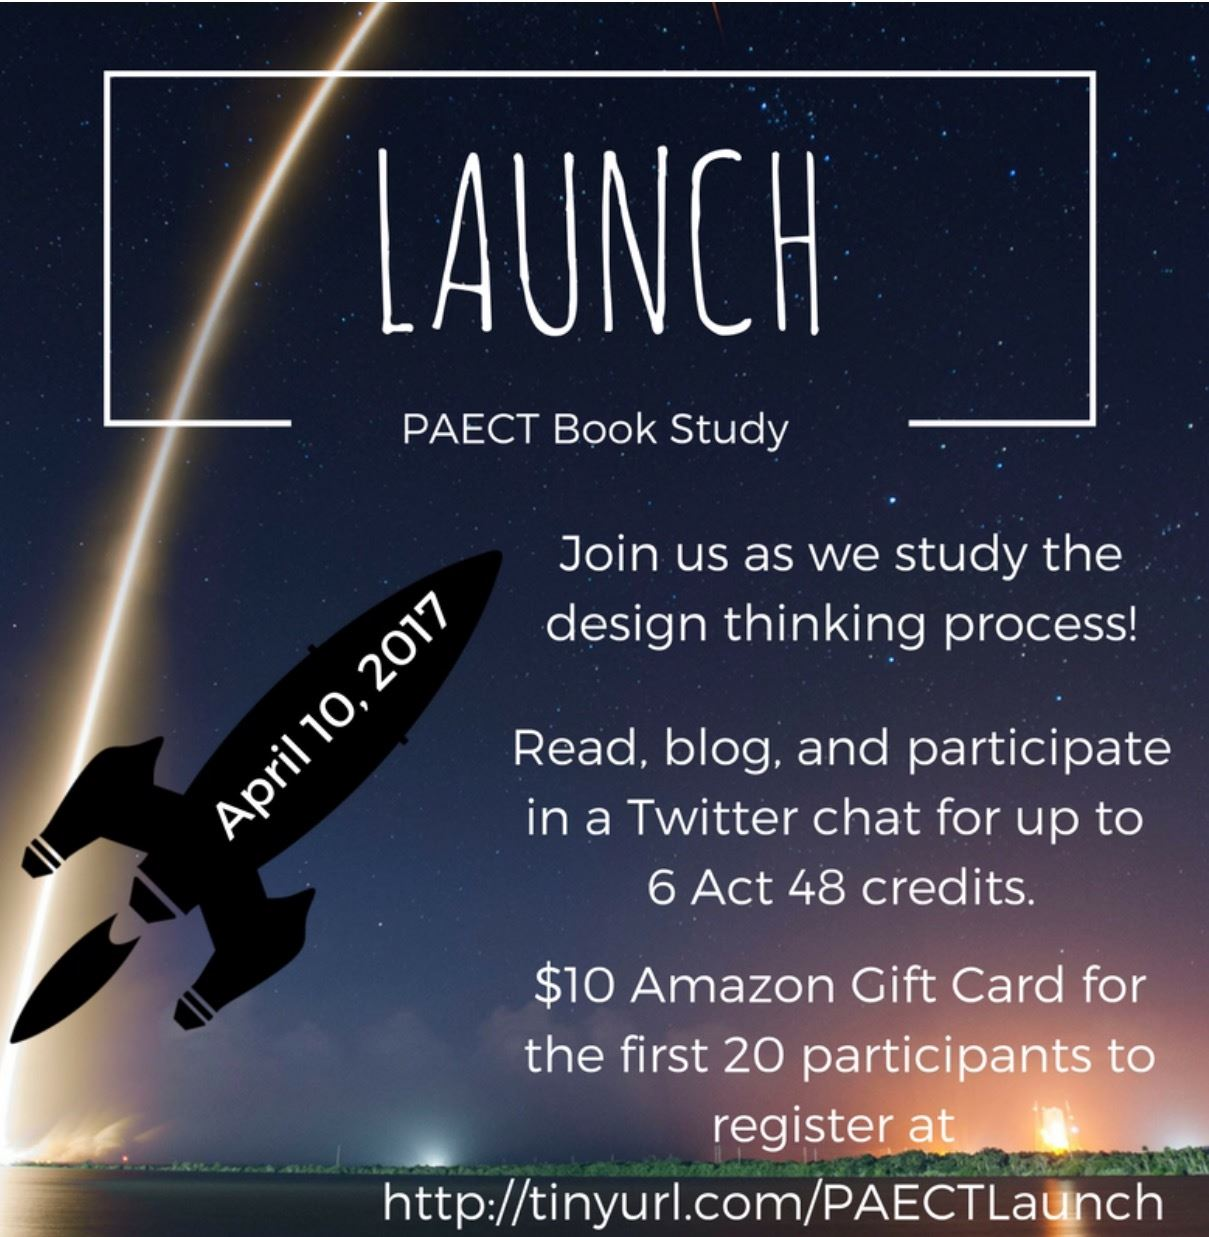 PAECT - PAECT Launch Book Study